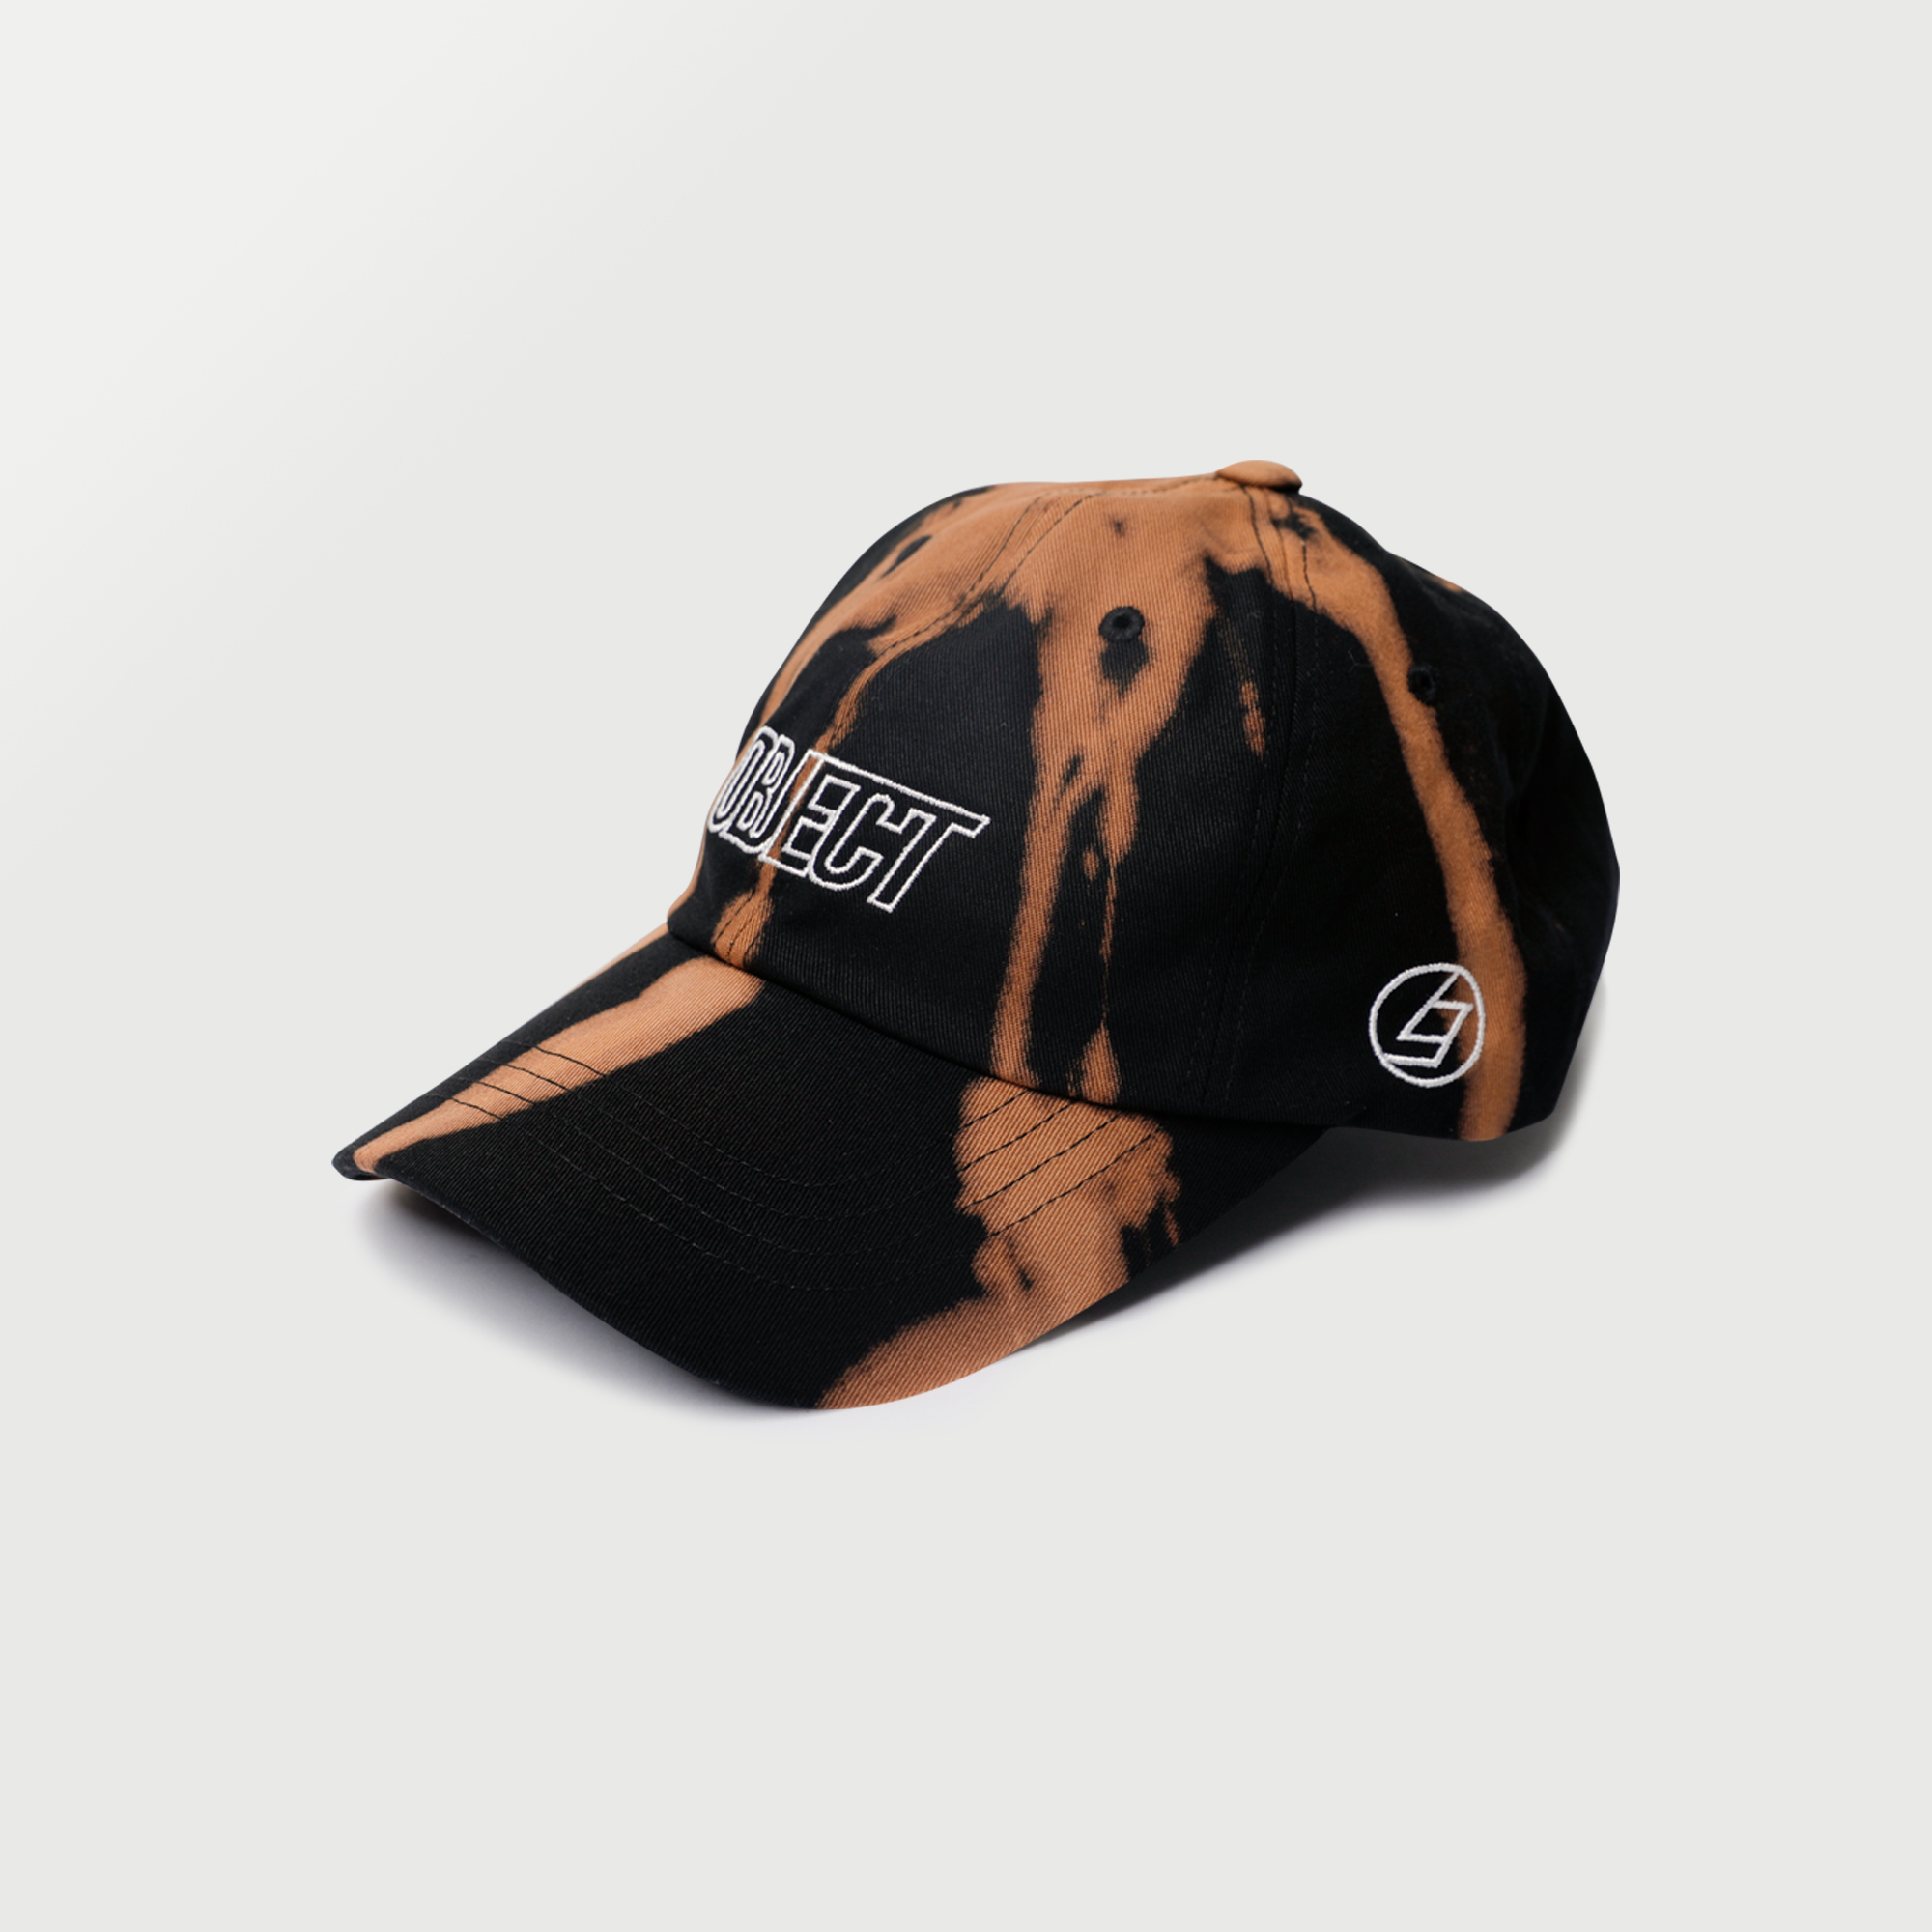 BLEACH OBJECT LOGO CAP (BLACK_WHITE)